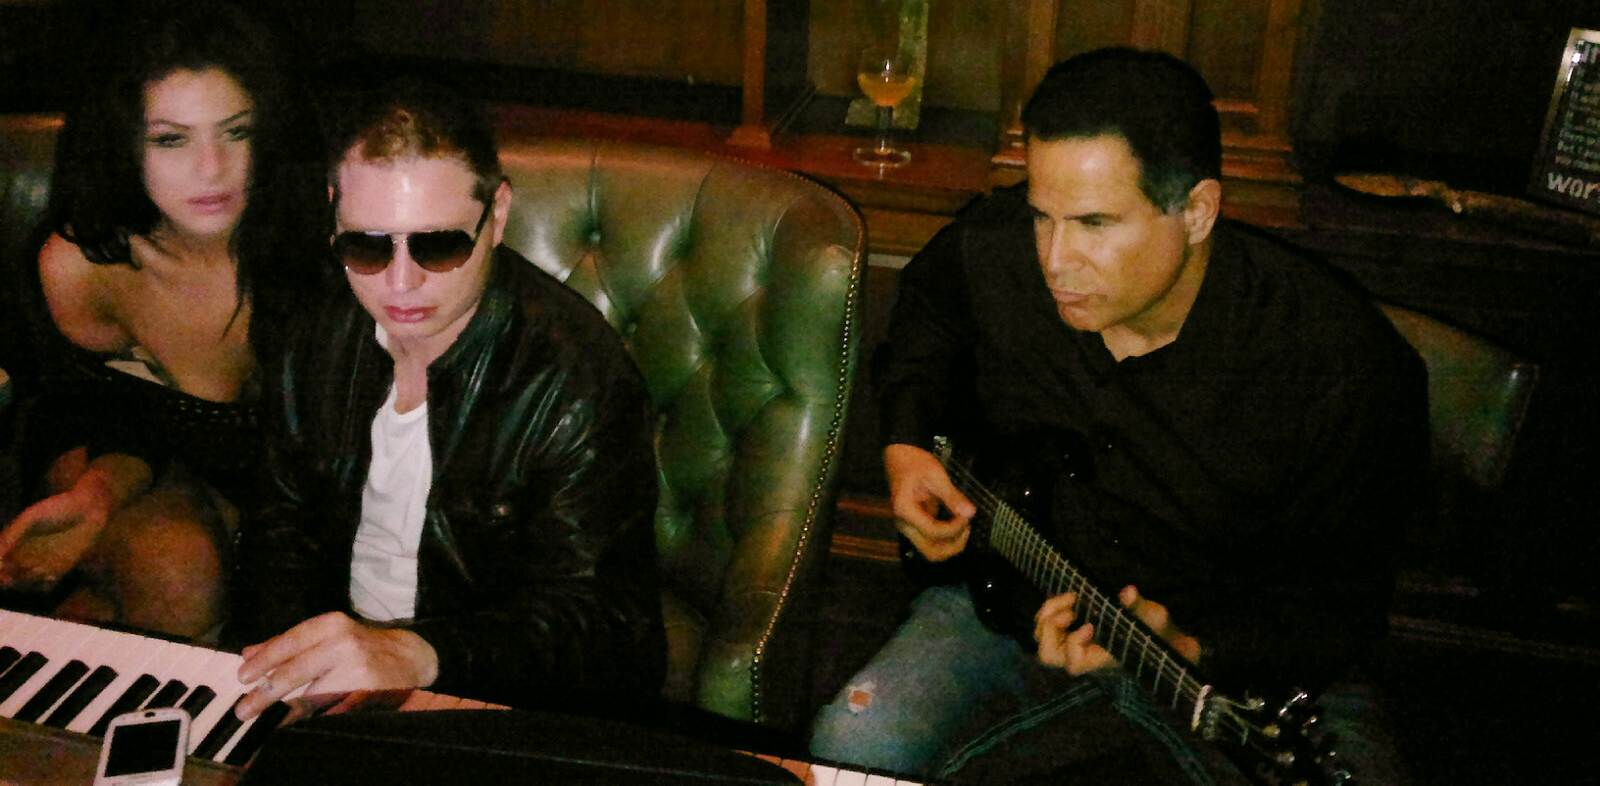 Keith Middlebrook, Scott Storch. Scott Storch Producer. Keith Middlebrook tmz, scott storch tmz, Jam session. Beverly Hills. tmz.